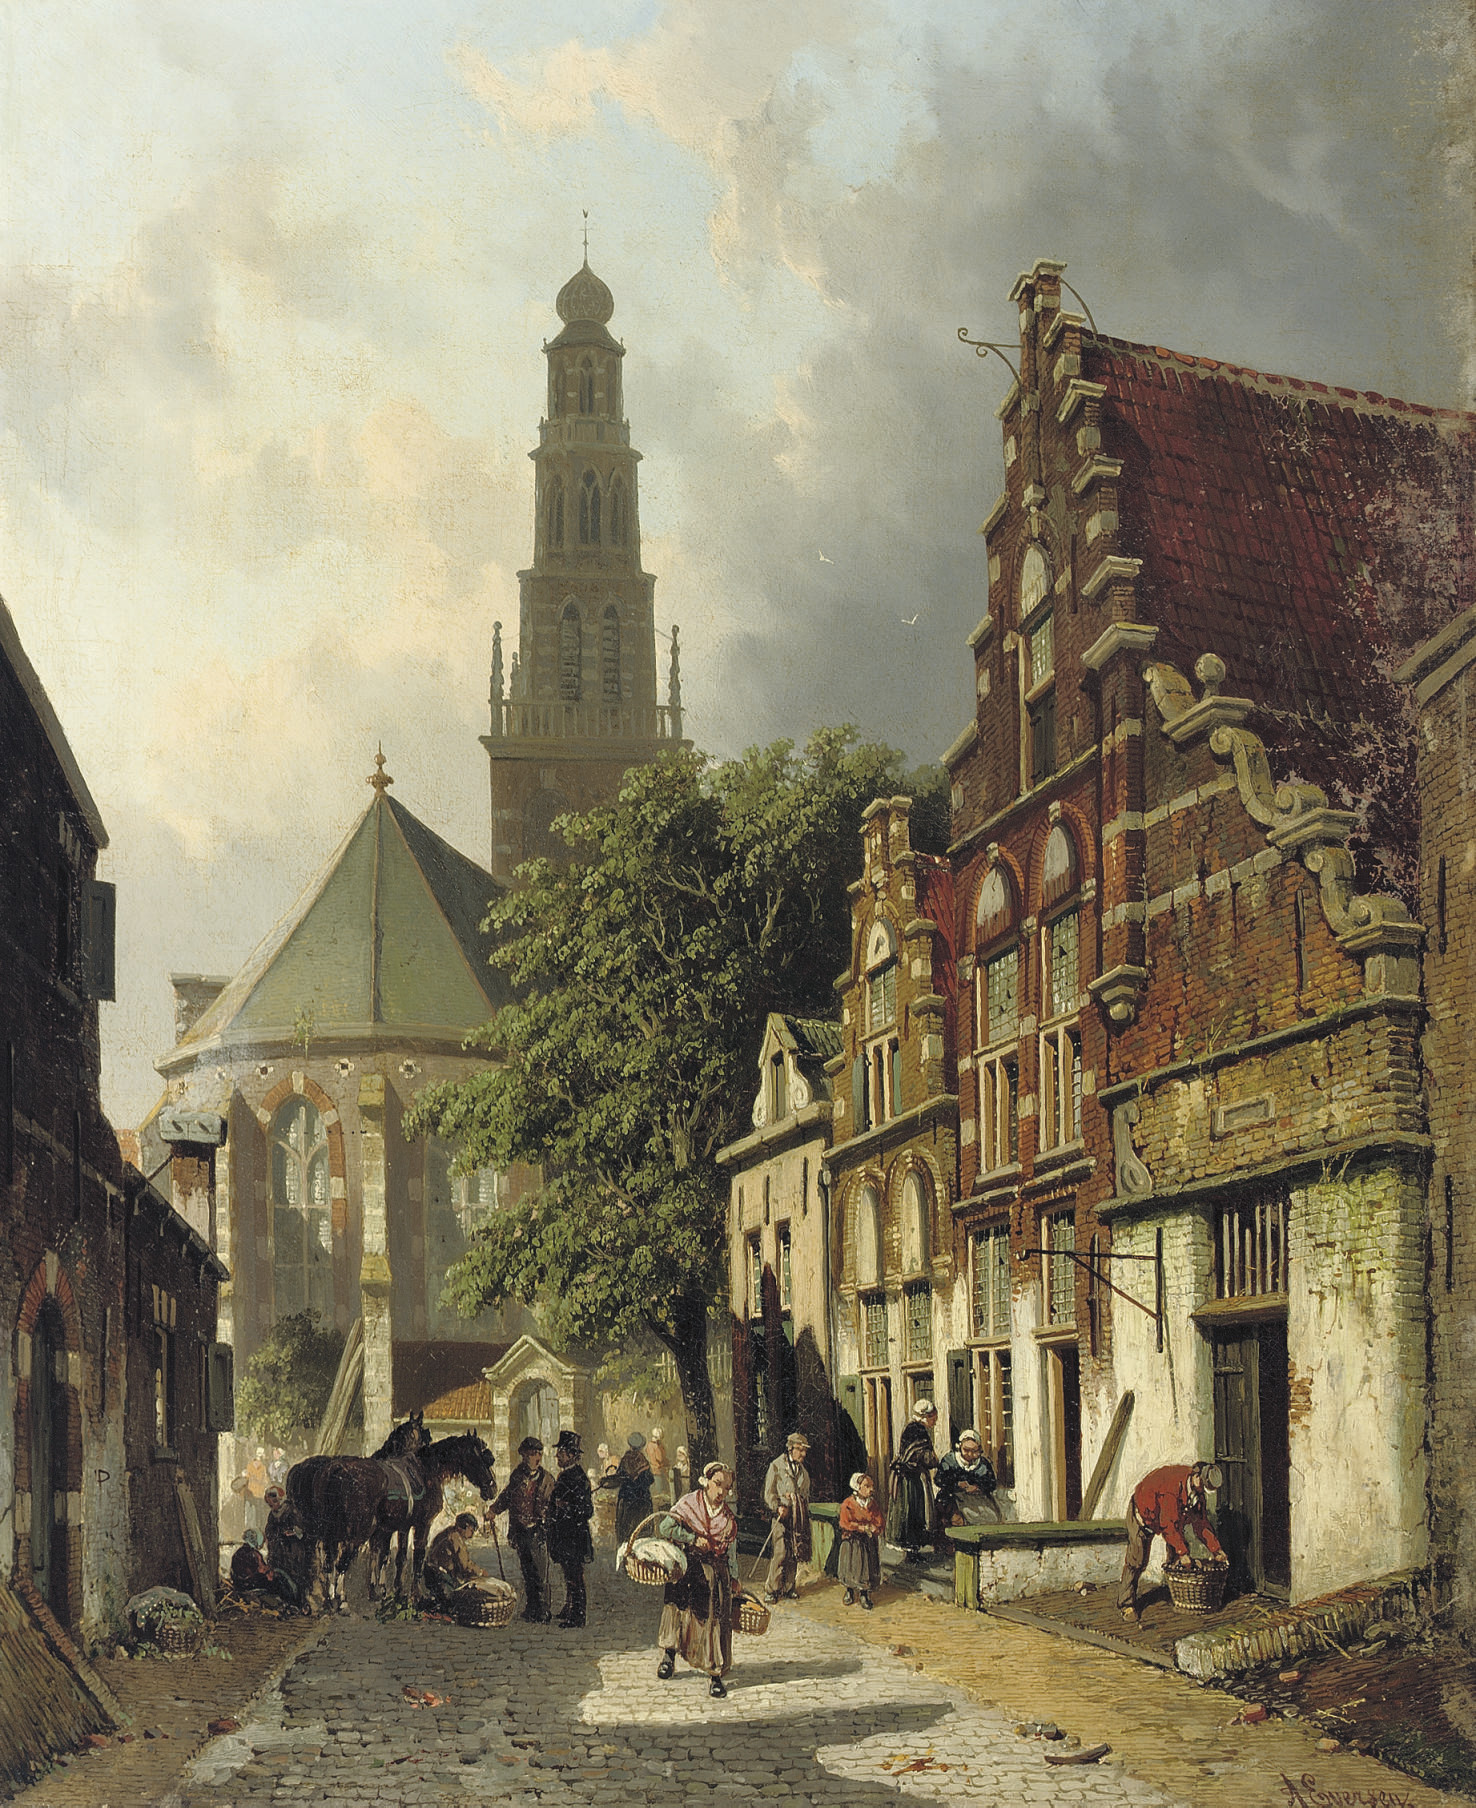 Townspeople in a sunlit street in Haarlem with the Waalse kerk beyond